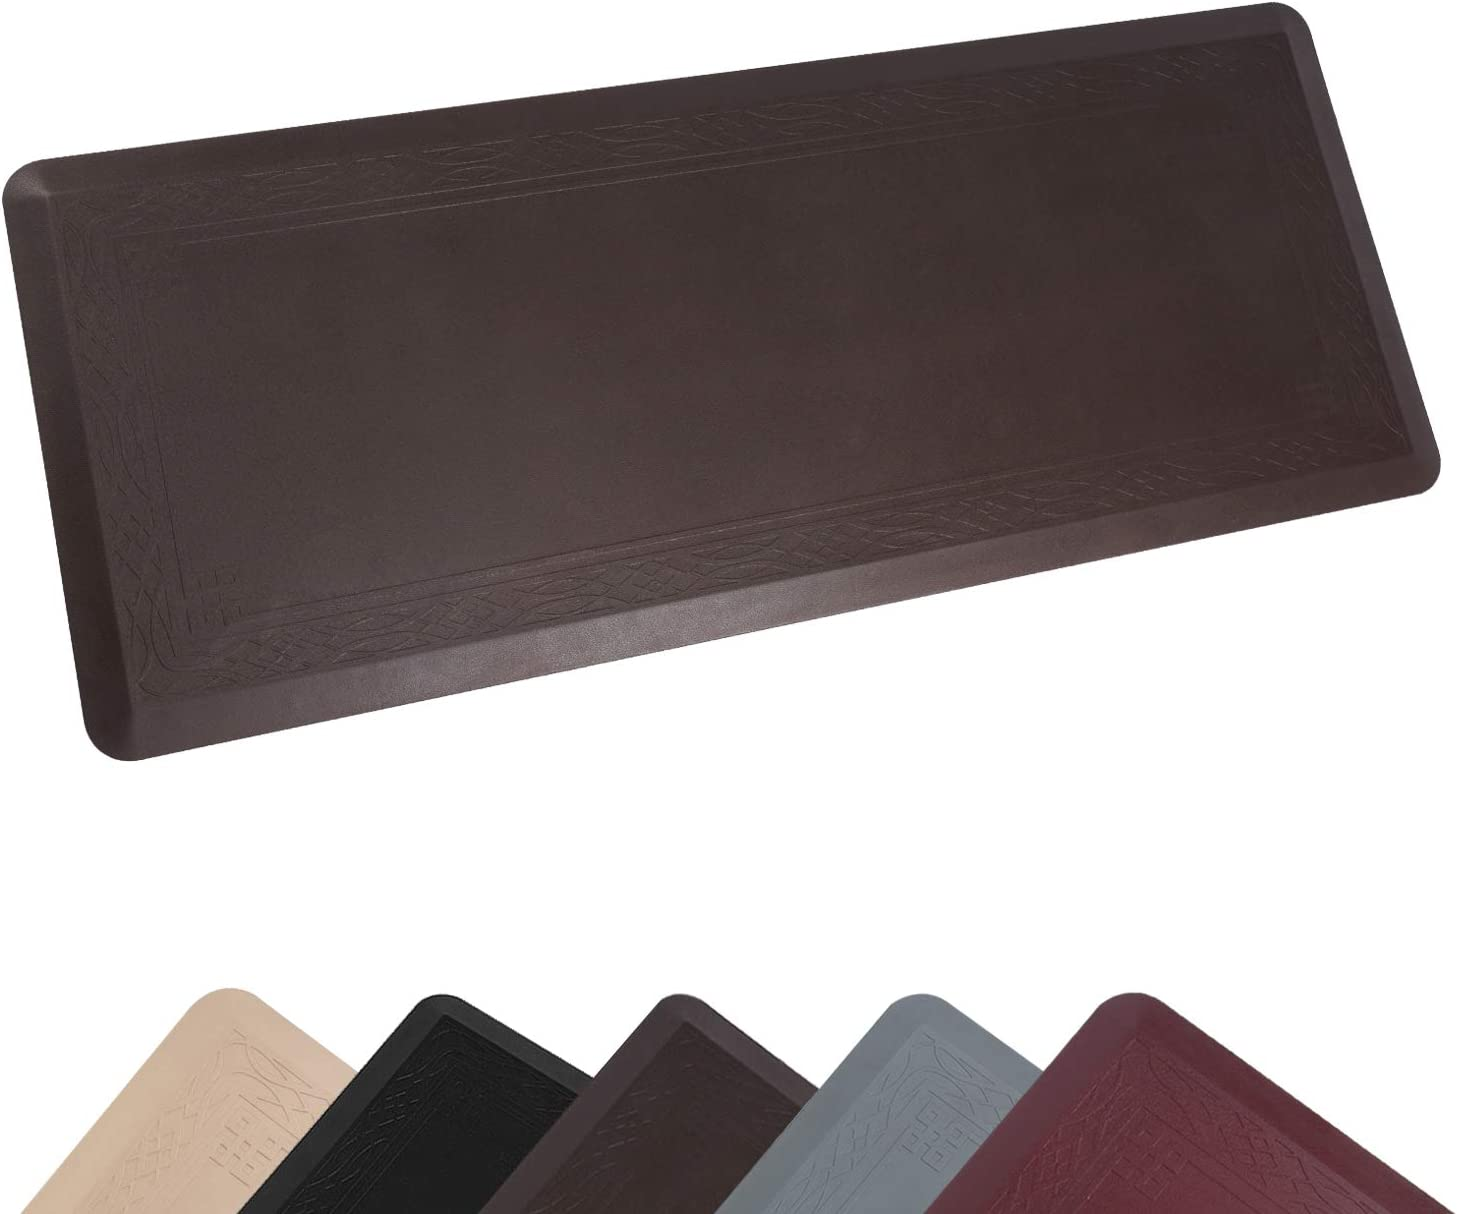 Anti Fatigue Comfort Mat by Large special price DAILYLIFE Th 3 Bottom Max 60% OFF 4